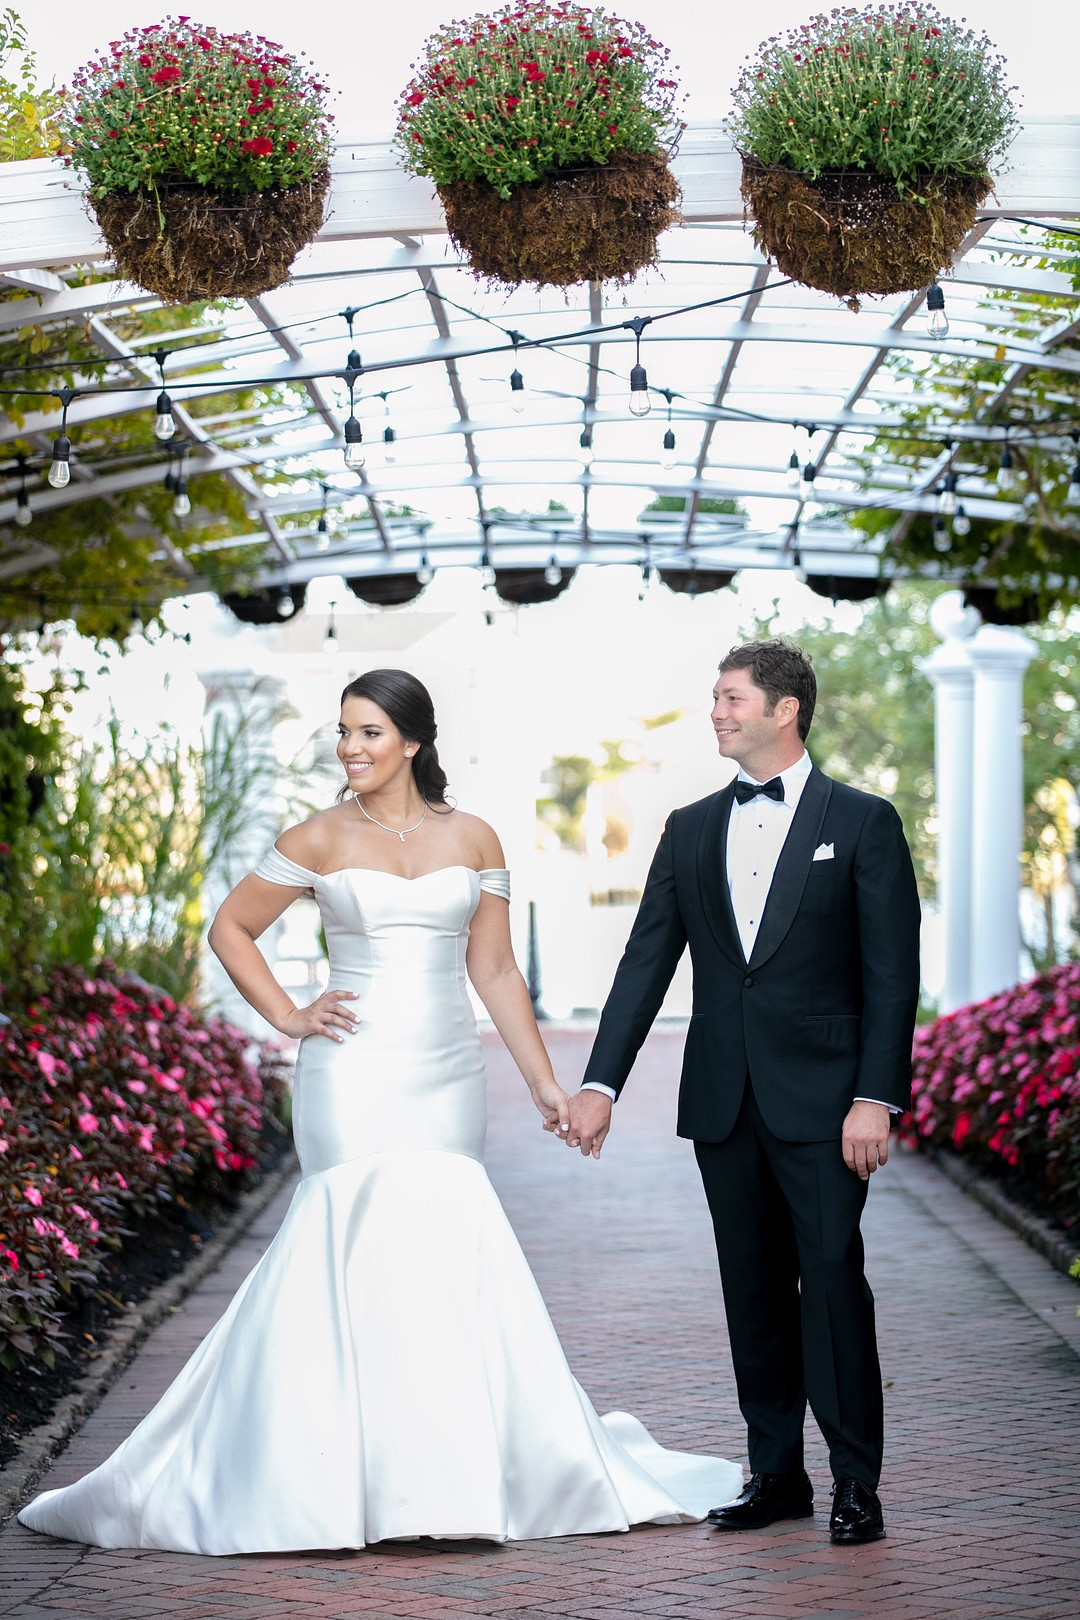 A Romantic Waterfront NJ Wedding at Bonnet Island by Federico Photography